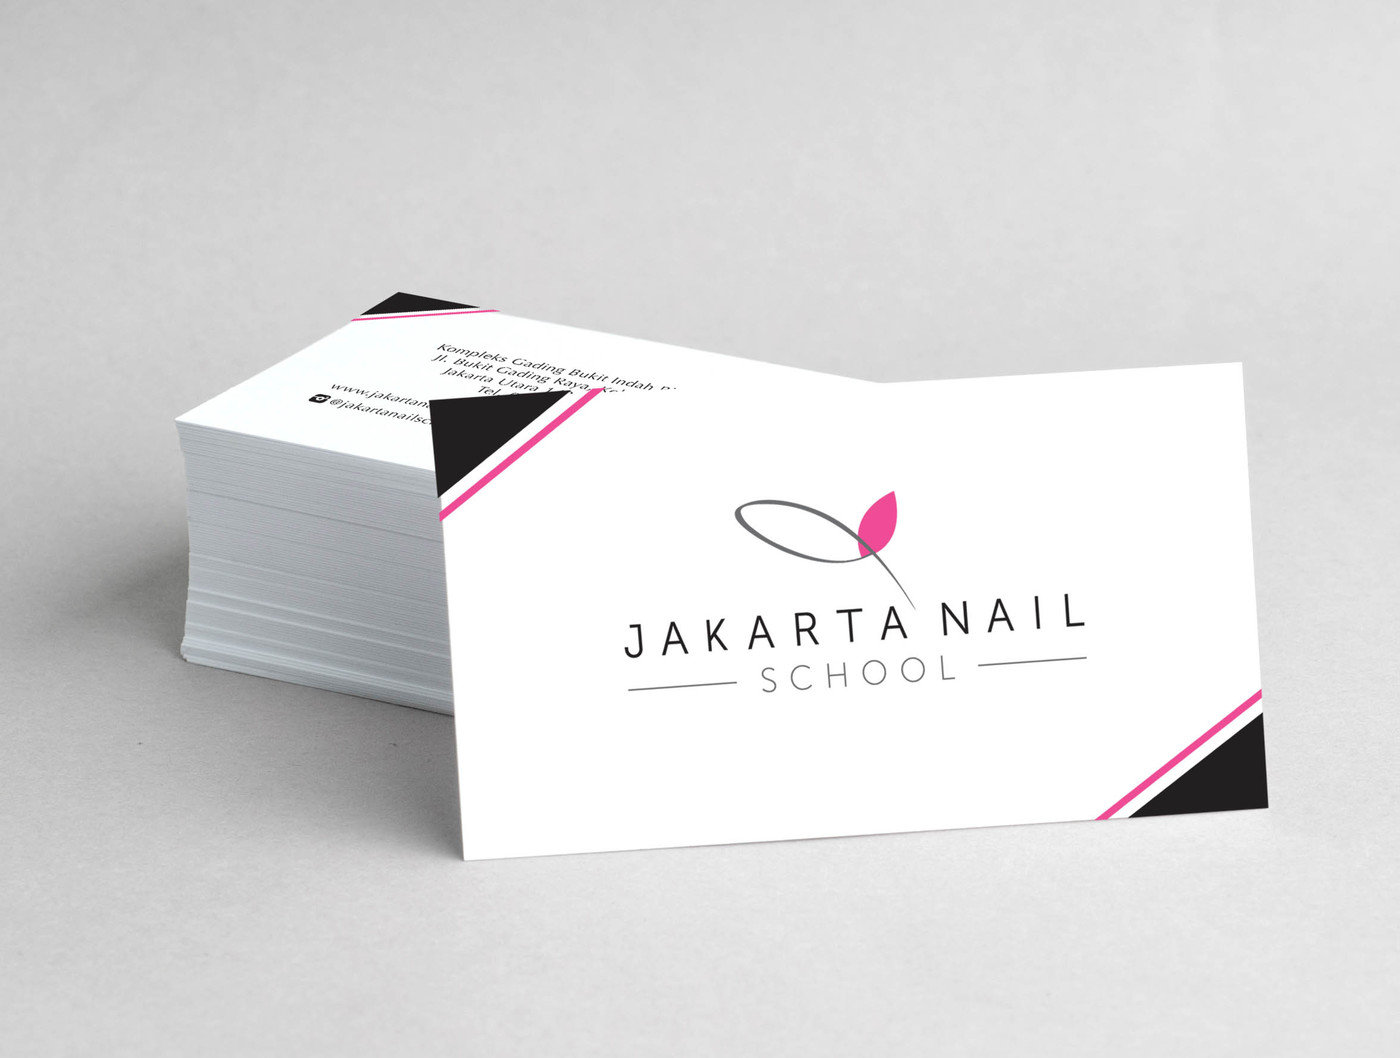 Logo And Name Card Design For Jakarta Nail School A Art Academy That Teaches Everyone Who Wants To Be Artist Or Open Their Own Shop